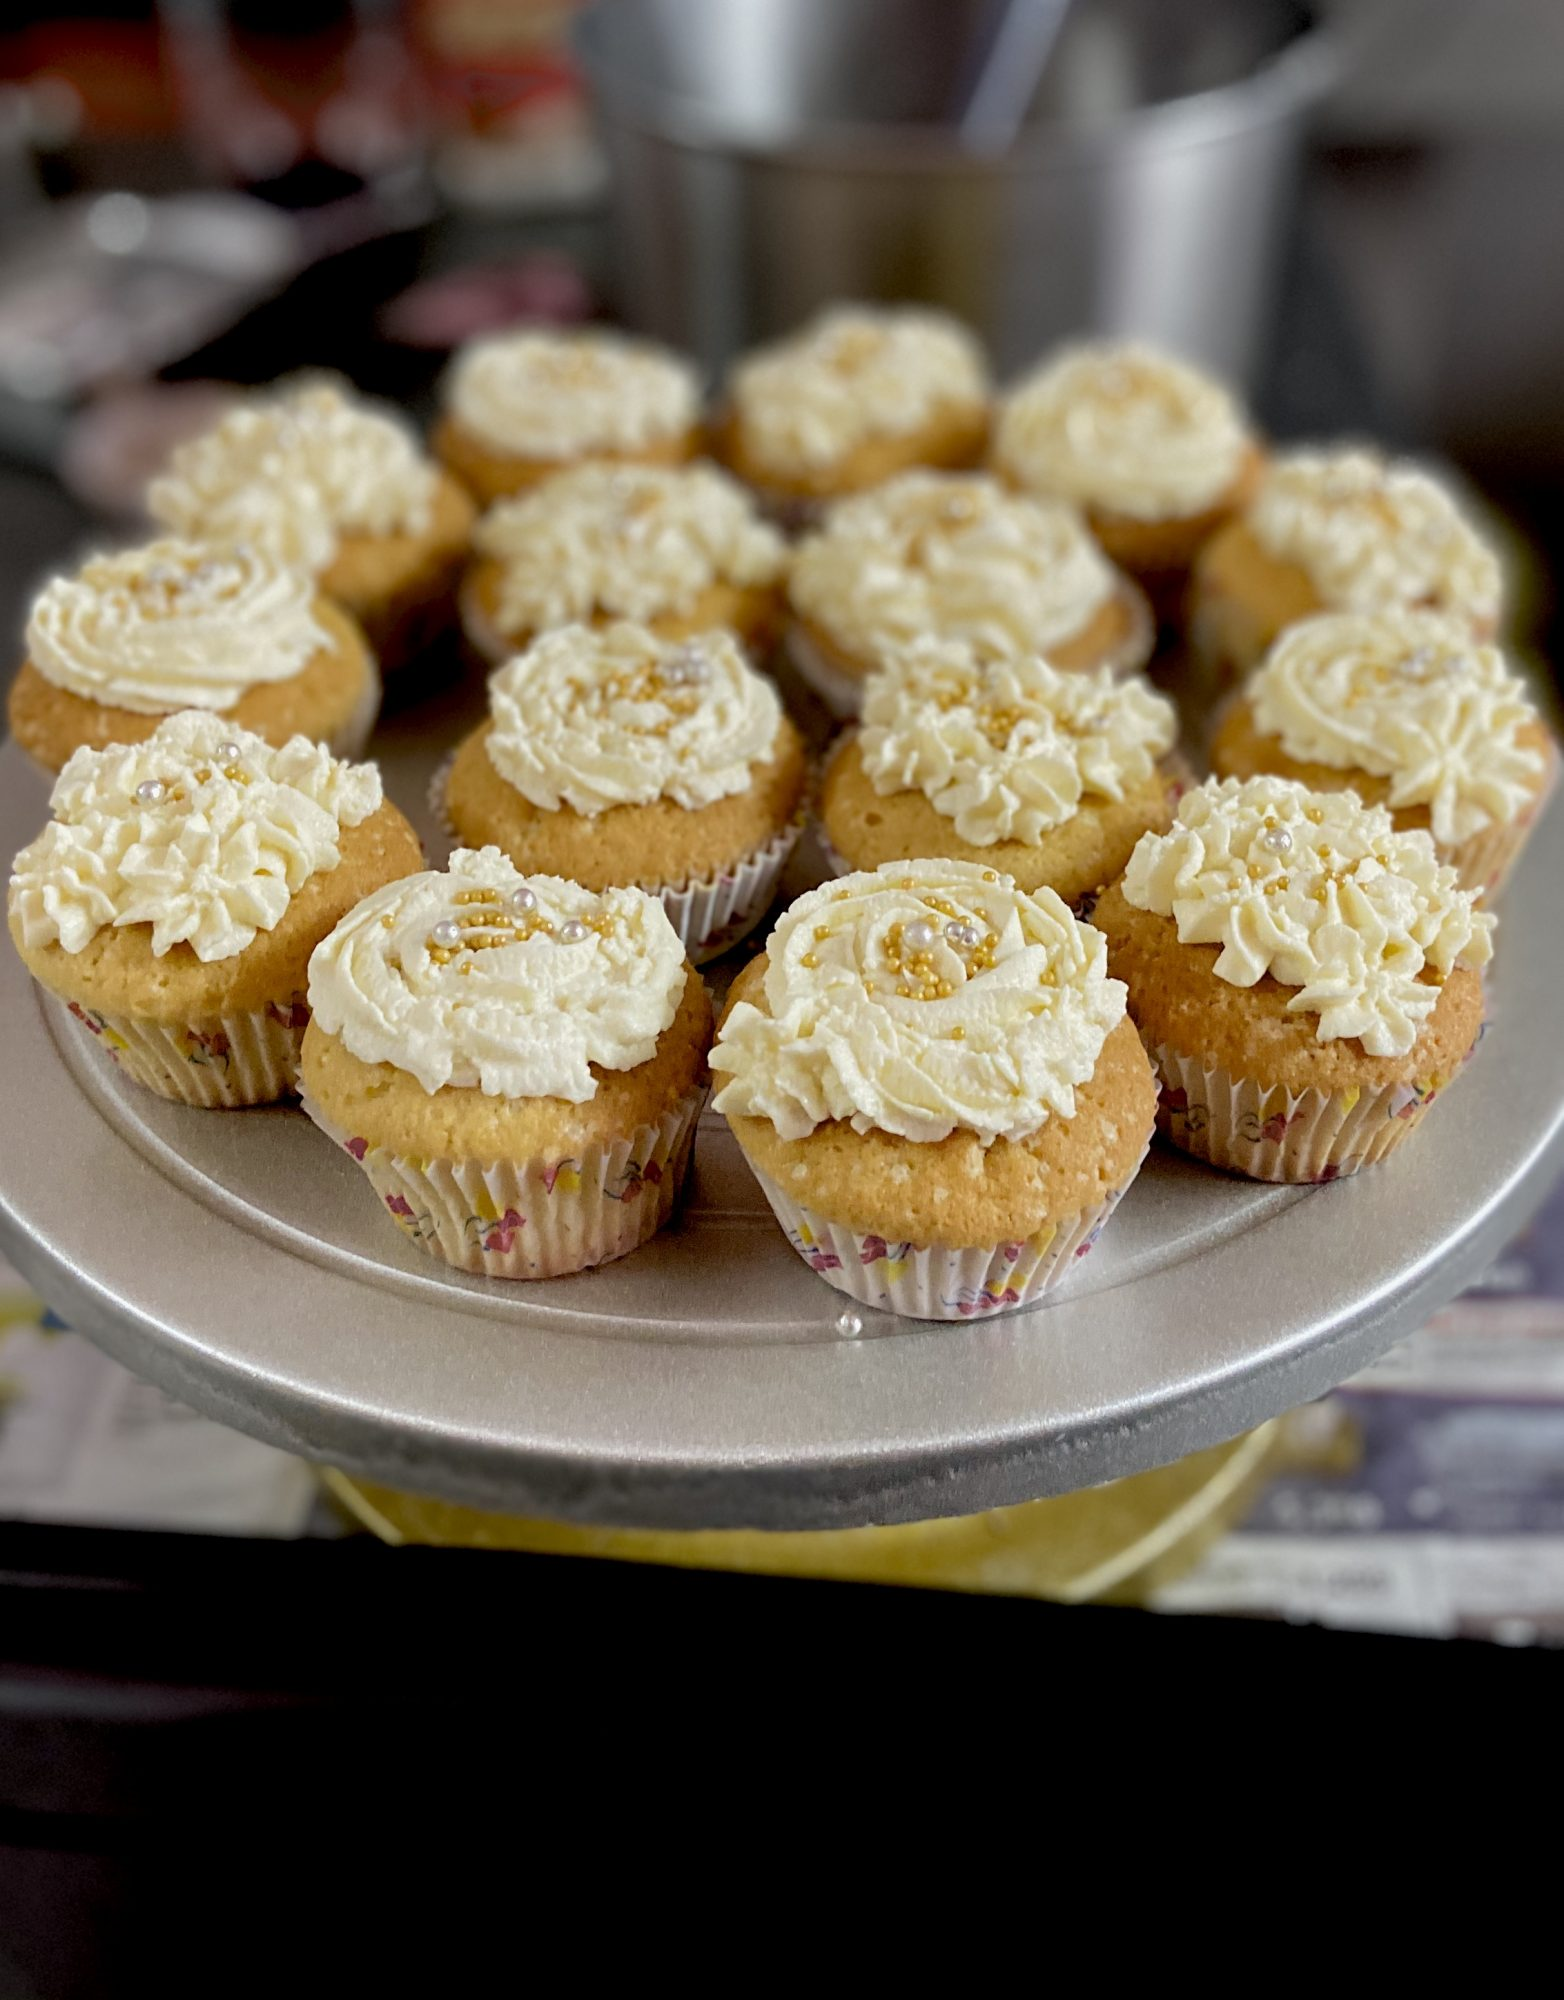 a plate holding 15 cupcakes with piped white frosting and gold sprinkles